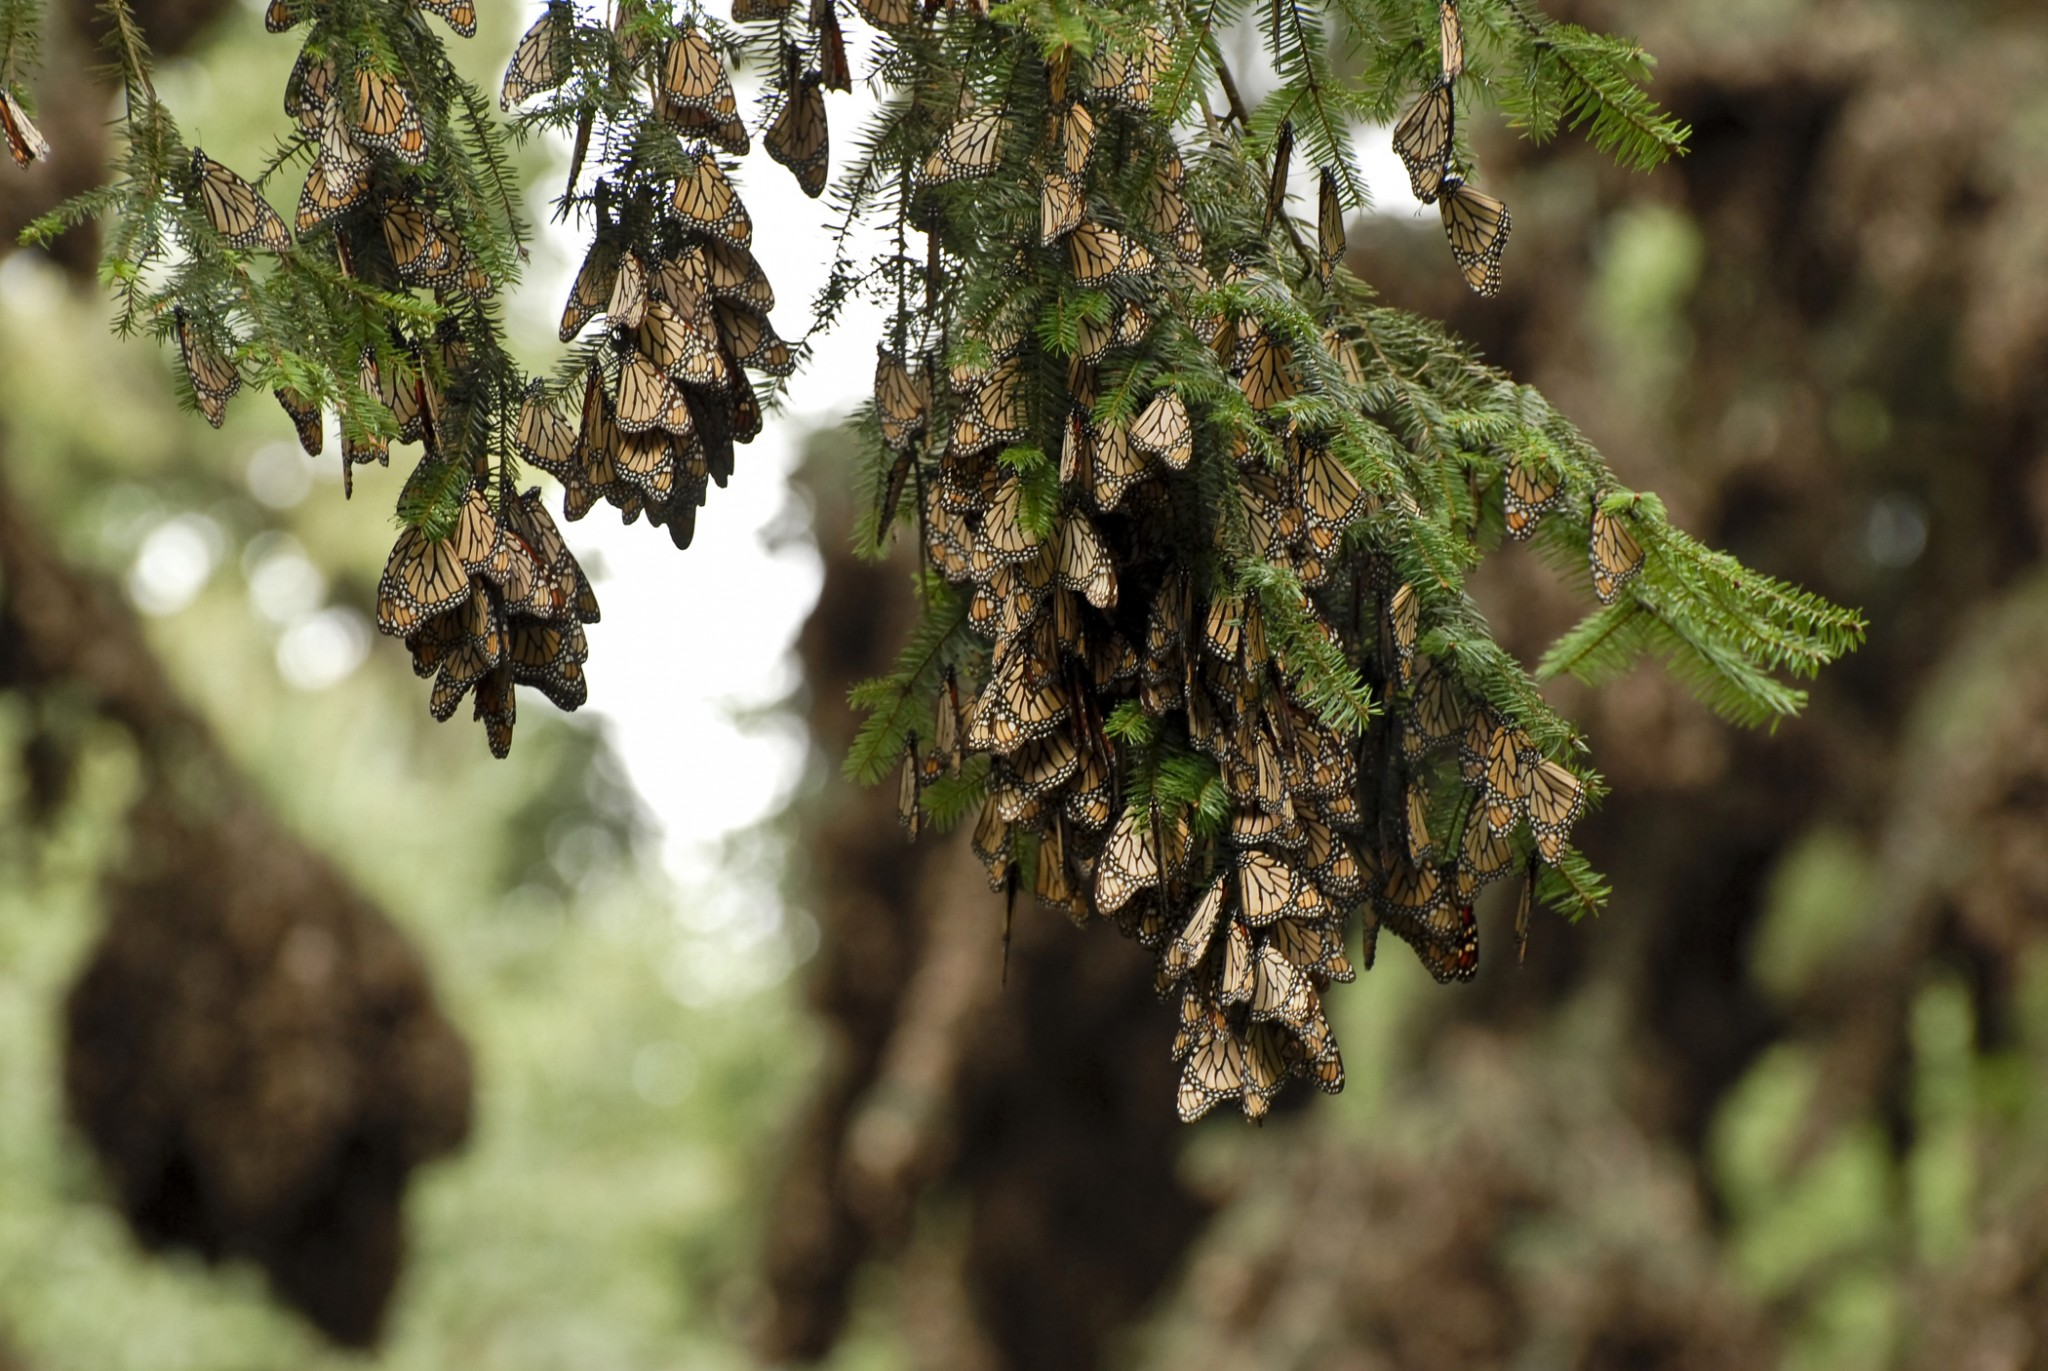 Florida Monarch Butterfly Populations Have Dropped 80